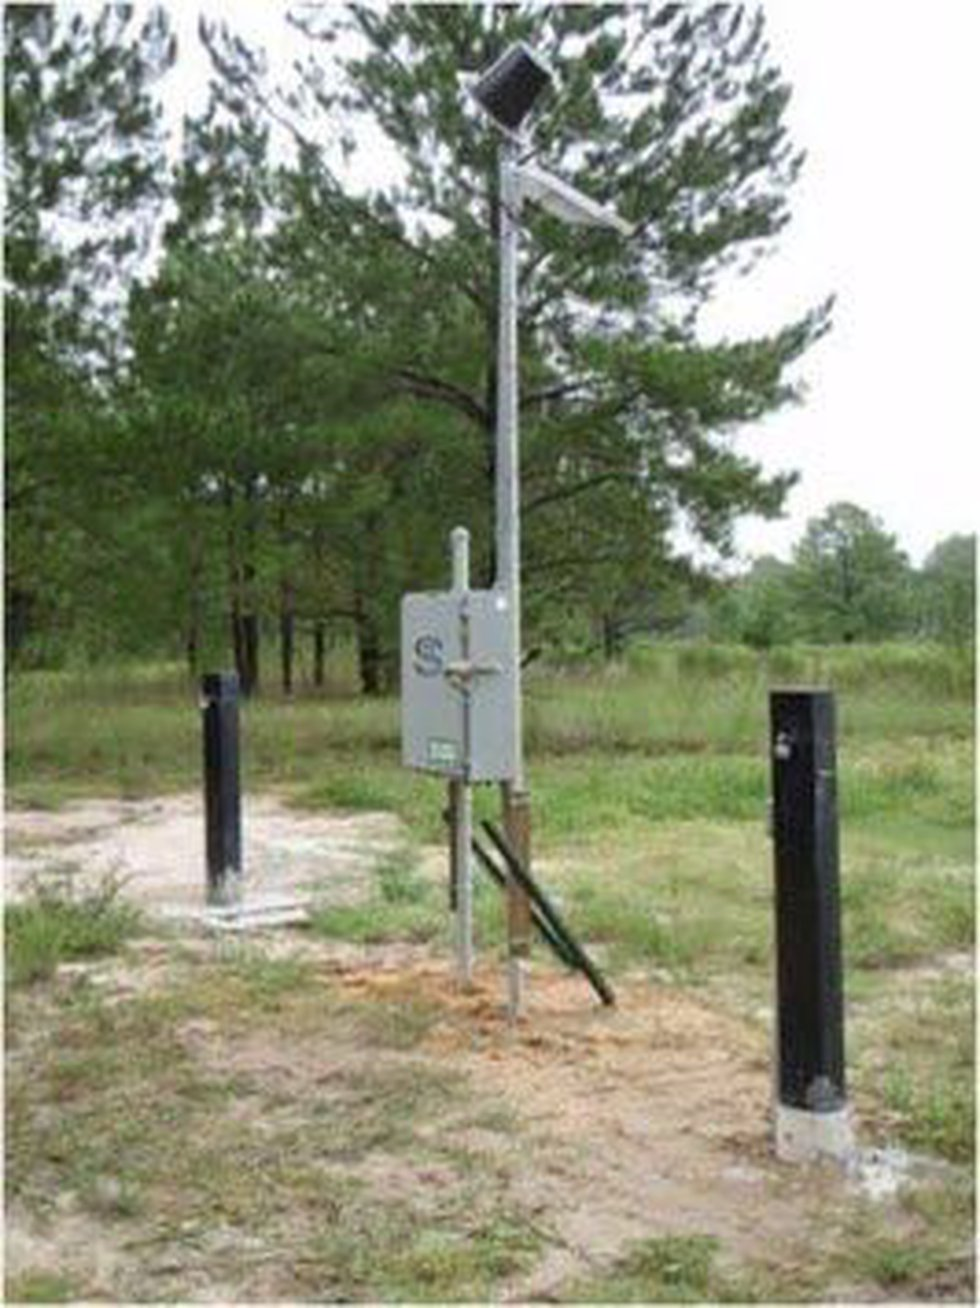 A USGS monitoring station installed in a Chesterfield County field.